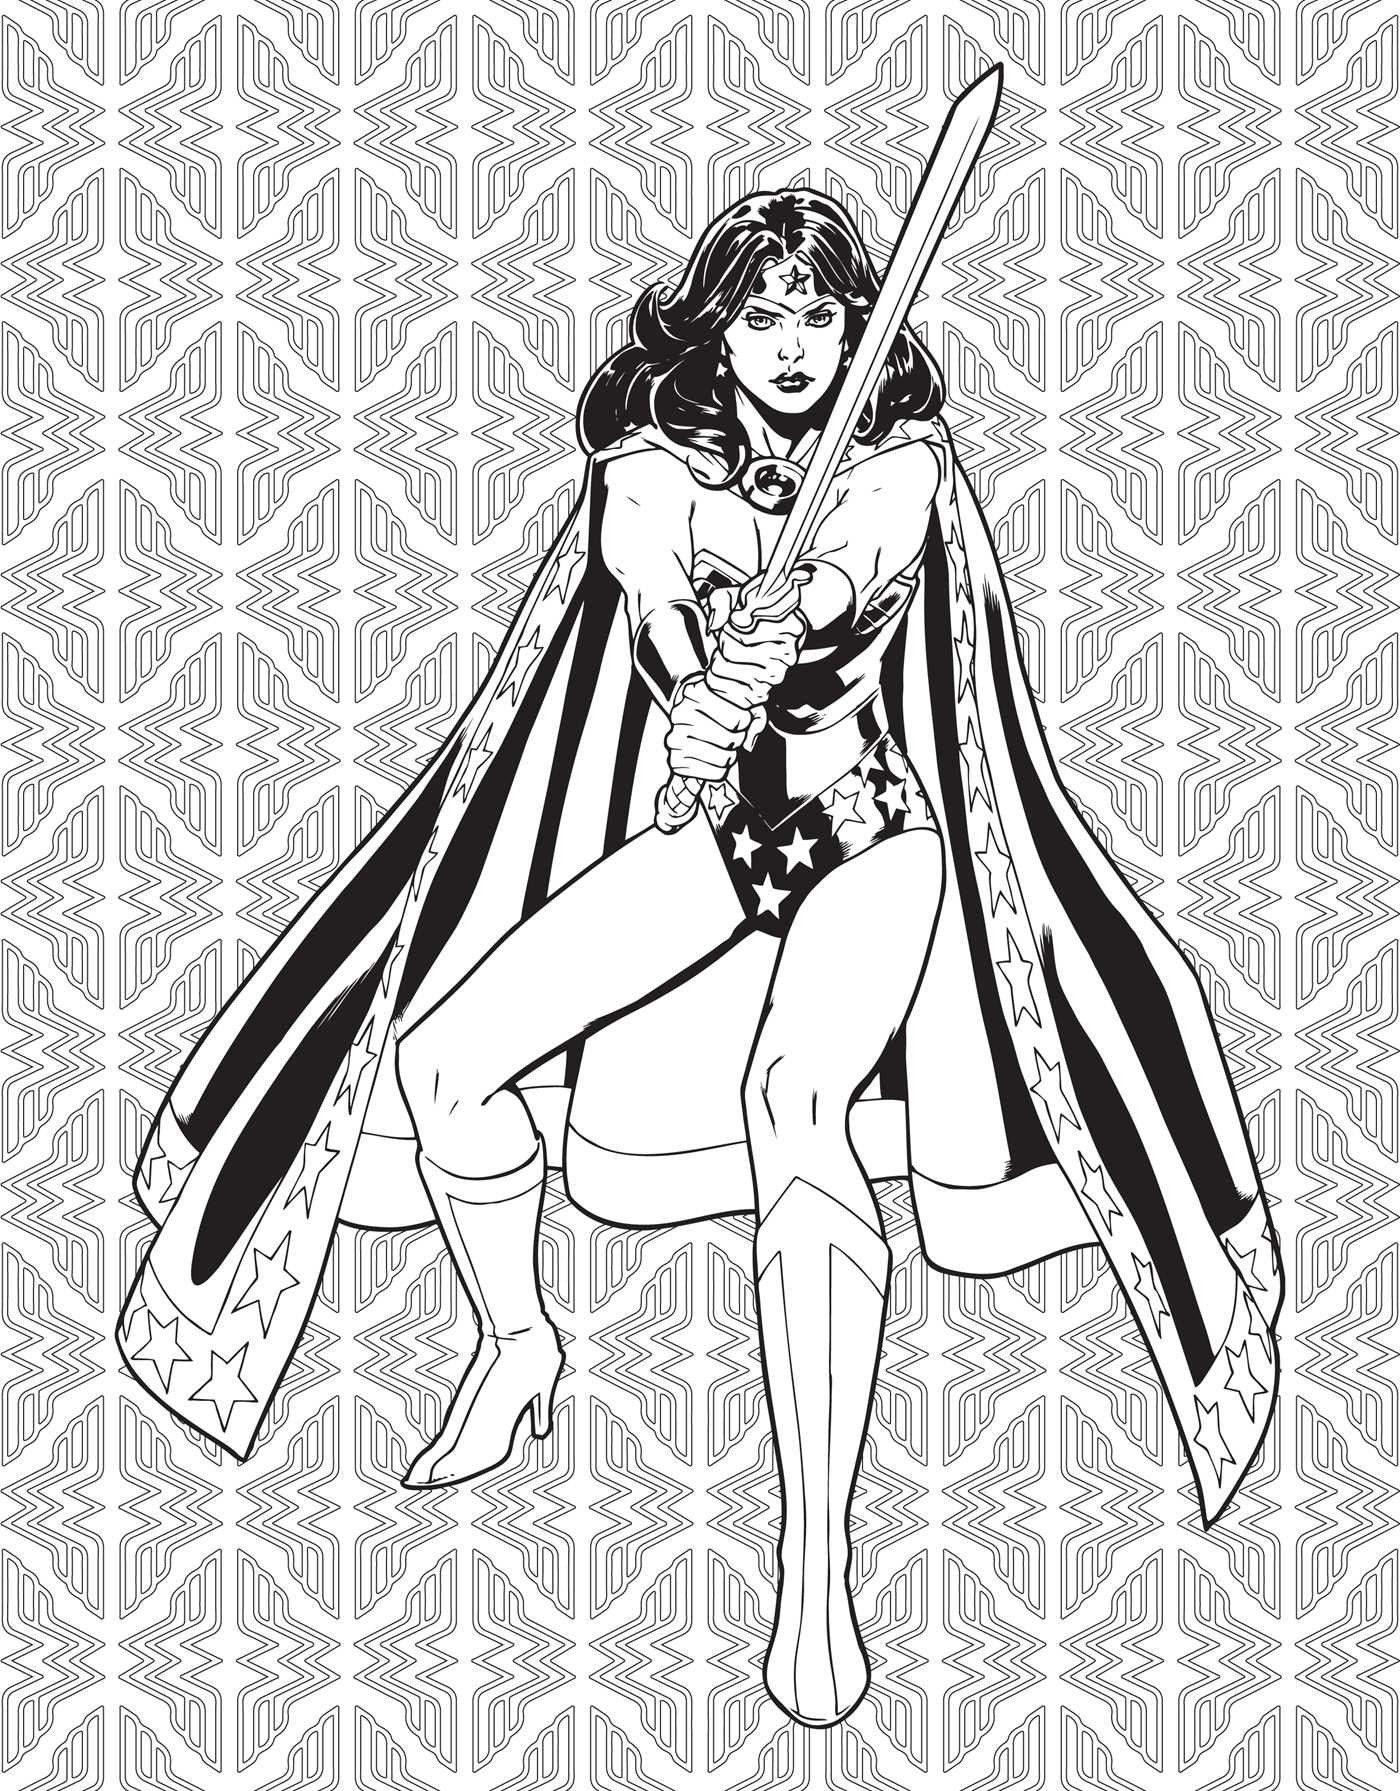 dc comics wonder woman coloring book 9781608878925in03